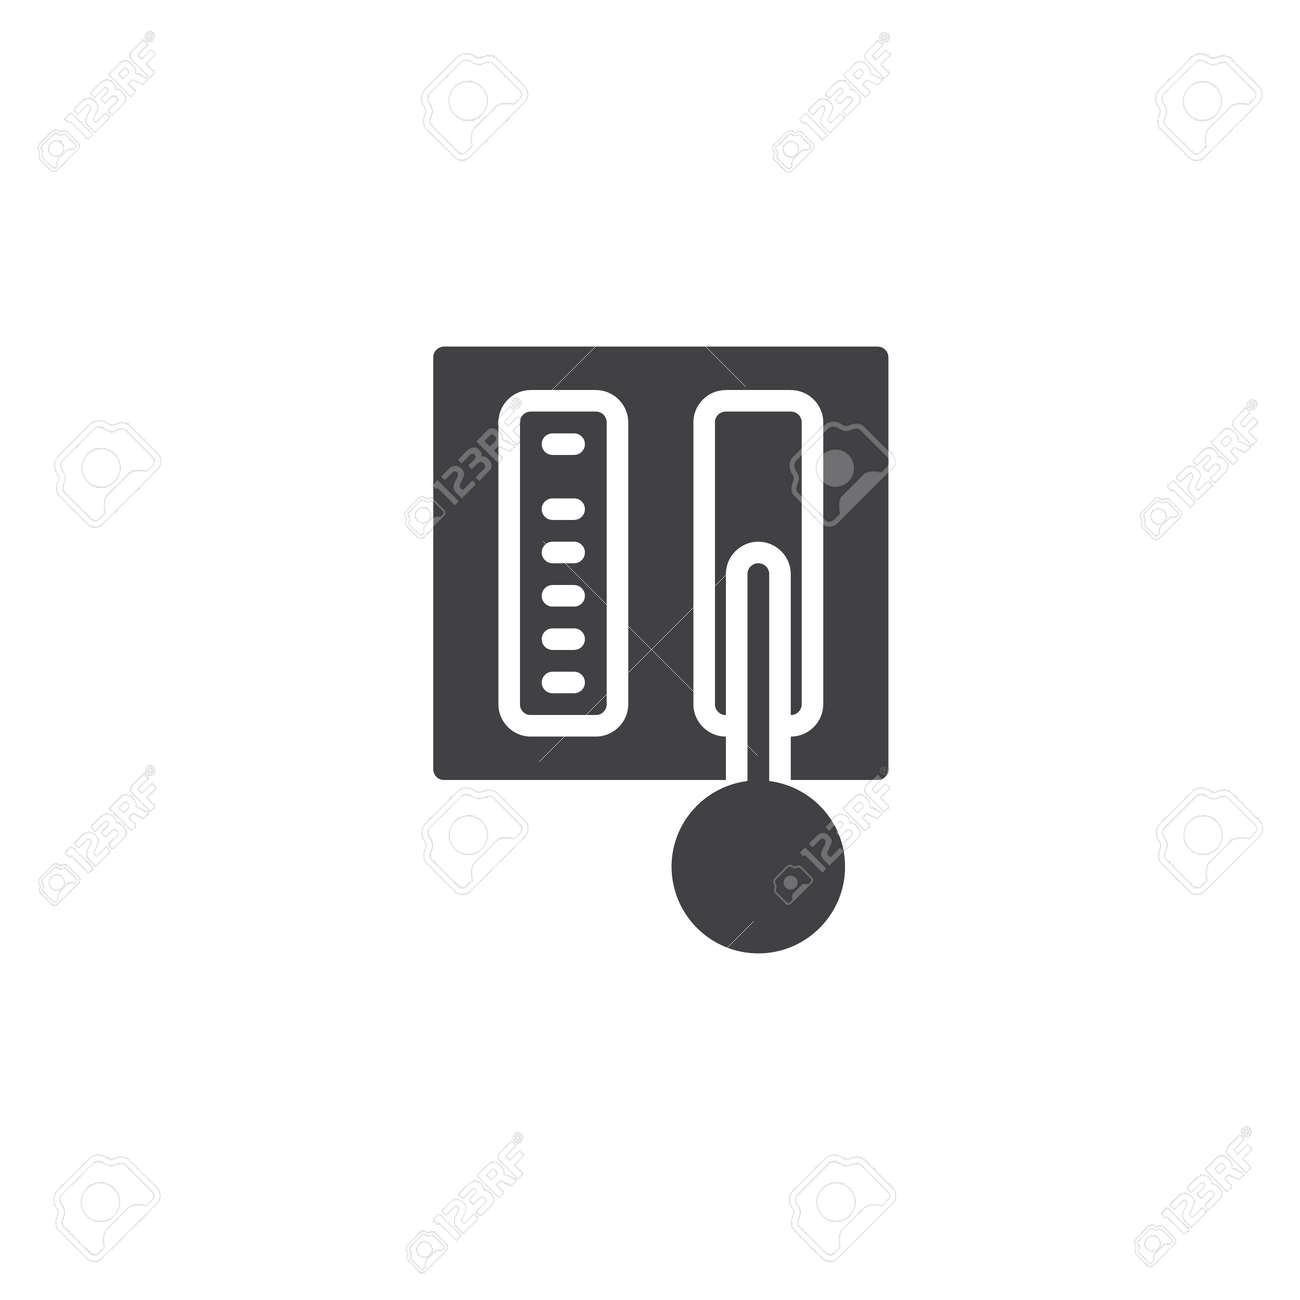 Car Automatic Transmission Vector Icon Filled Flat Sign For Royalty Free Cliparts Vectors And Stock Illustration Image 119492586